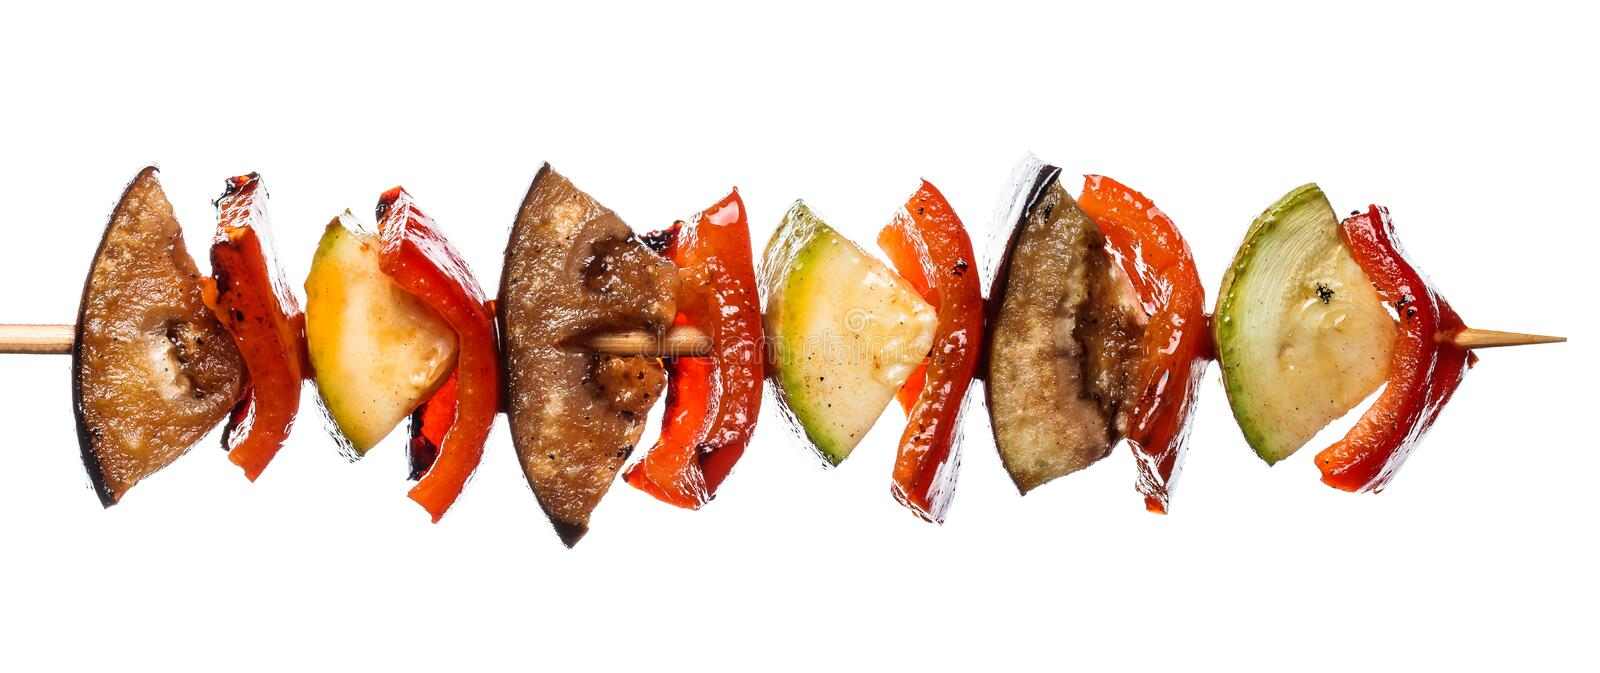 Grilled vegetable kebab on skewer with tomato, pepper, zucchini, squash and eggplant on white background, isolated food.  royalty free stock photos